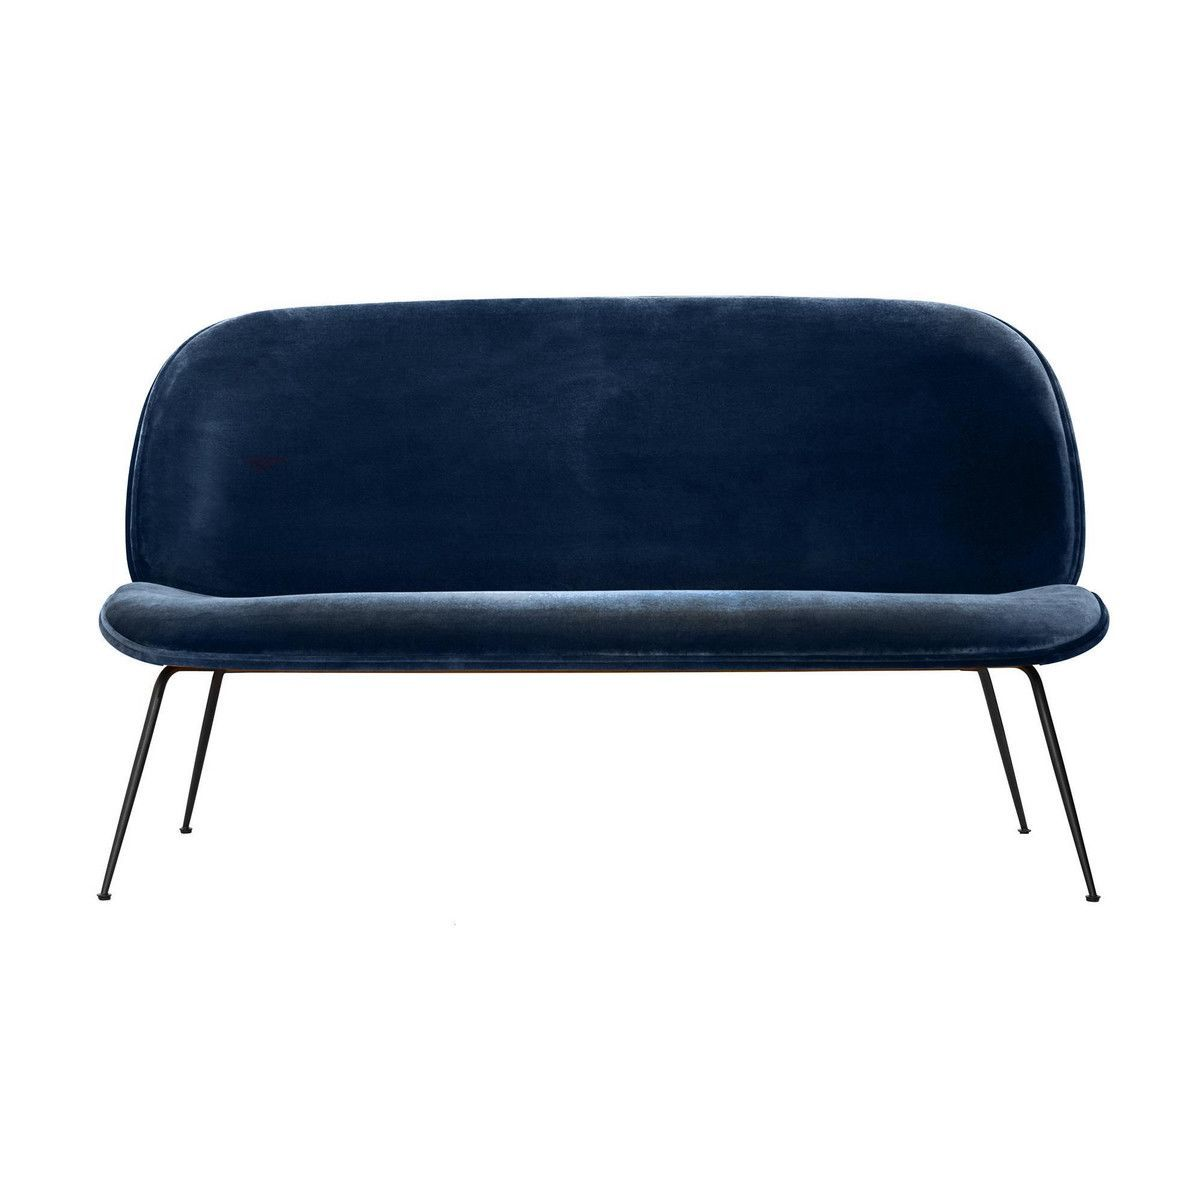 Gubi - Beetle Sofa Velvet Black Base - Dark Blue/Velvet Velluto G075/420